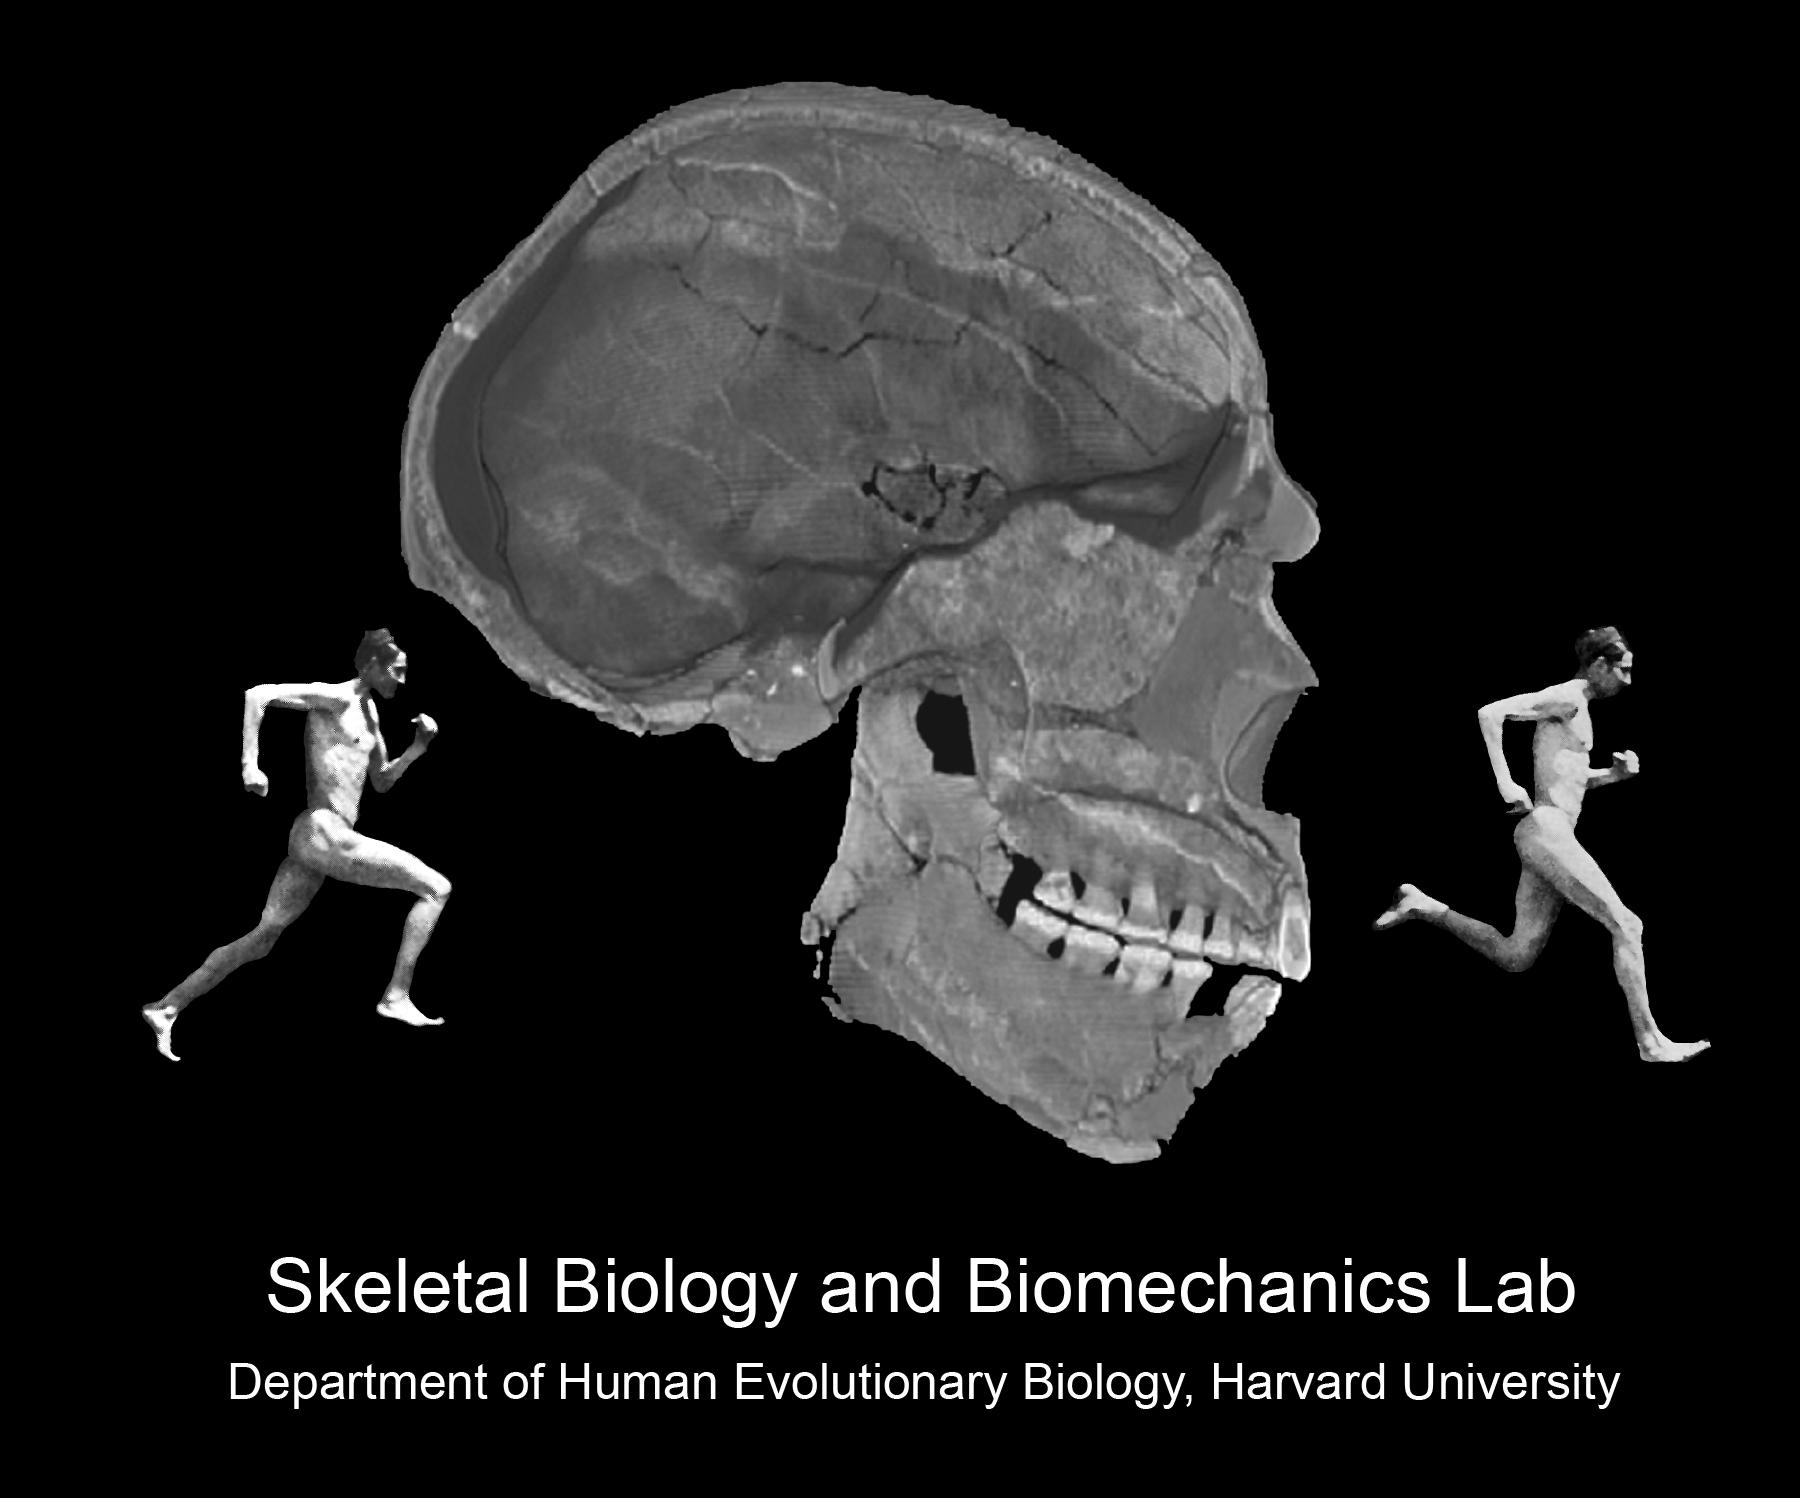 Harvard University Skeletal Biology and Biomechanics Lab